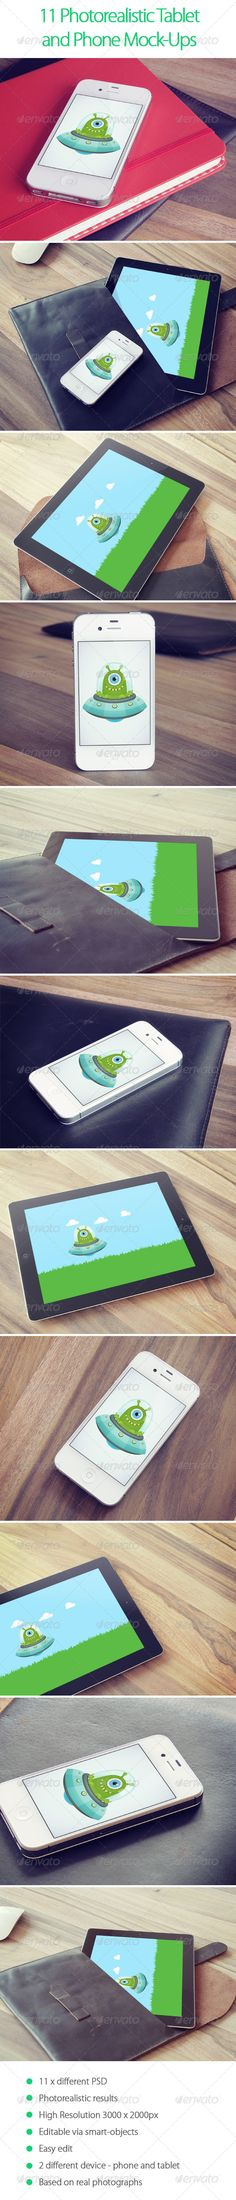 11 Photorealistic Tablet and Phone Mock-Ups - Displays Product Mock-Ups